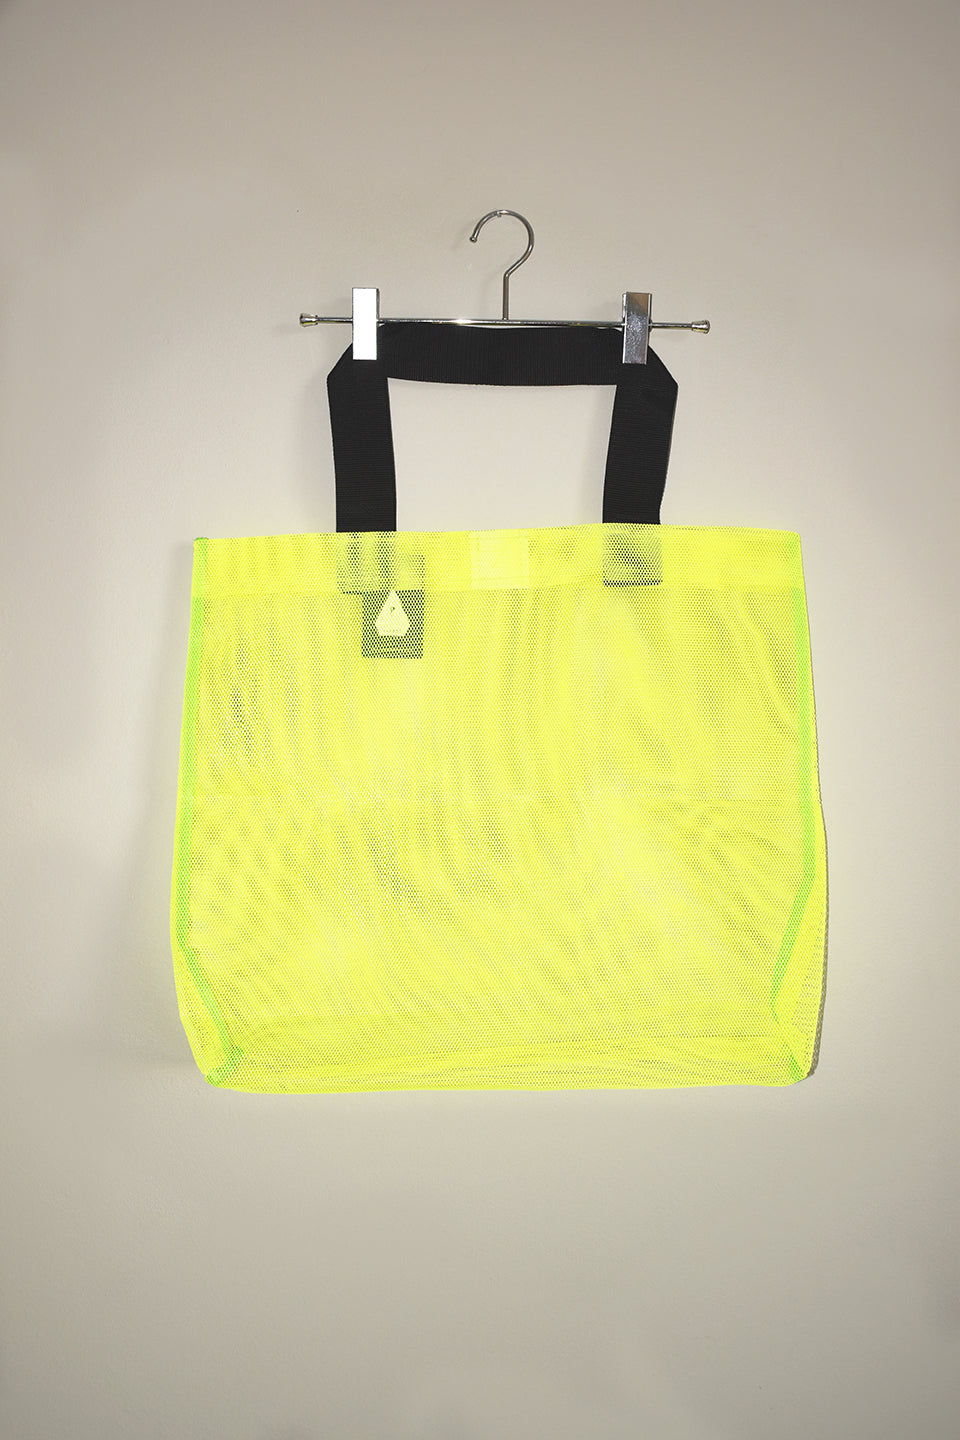 Load image into Gallery viewer, Jumbo Net Bag - Lumo Yellow